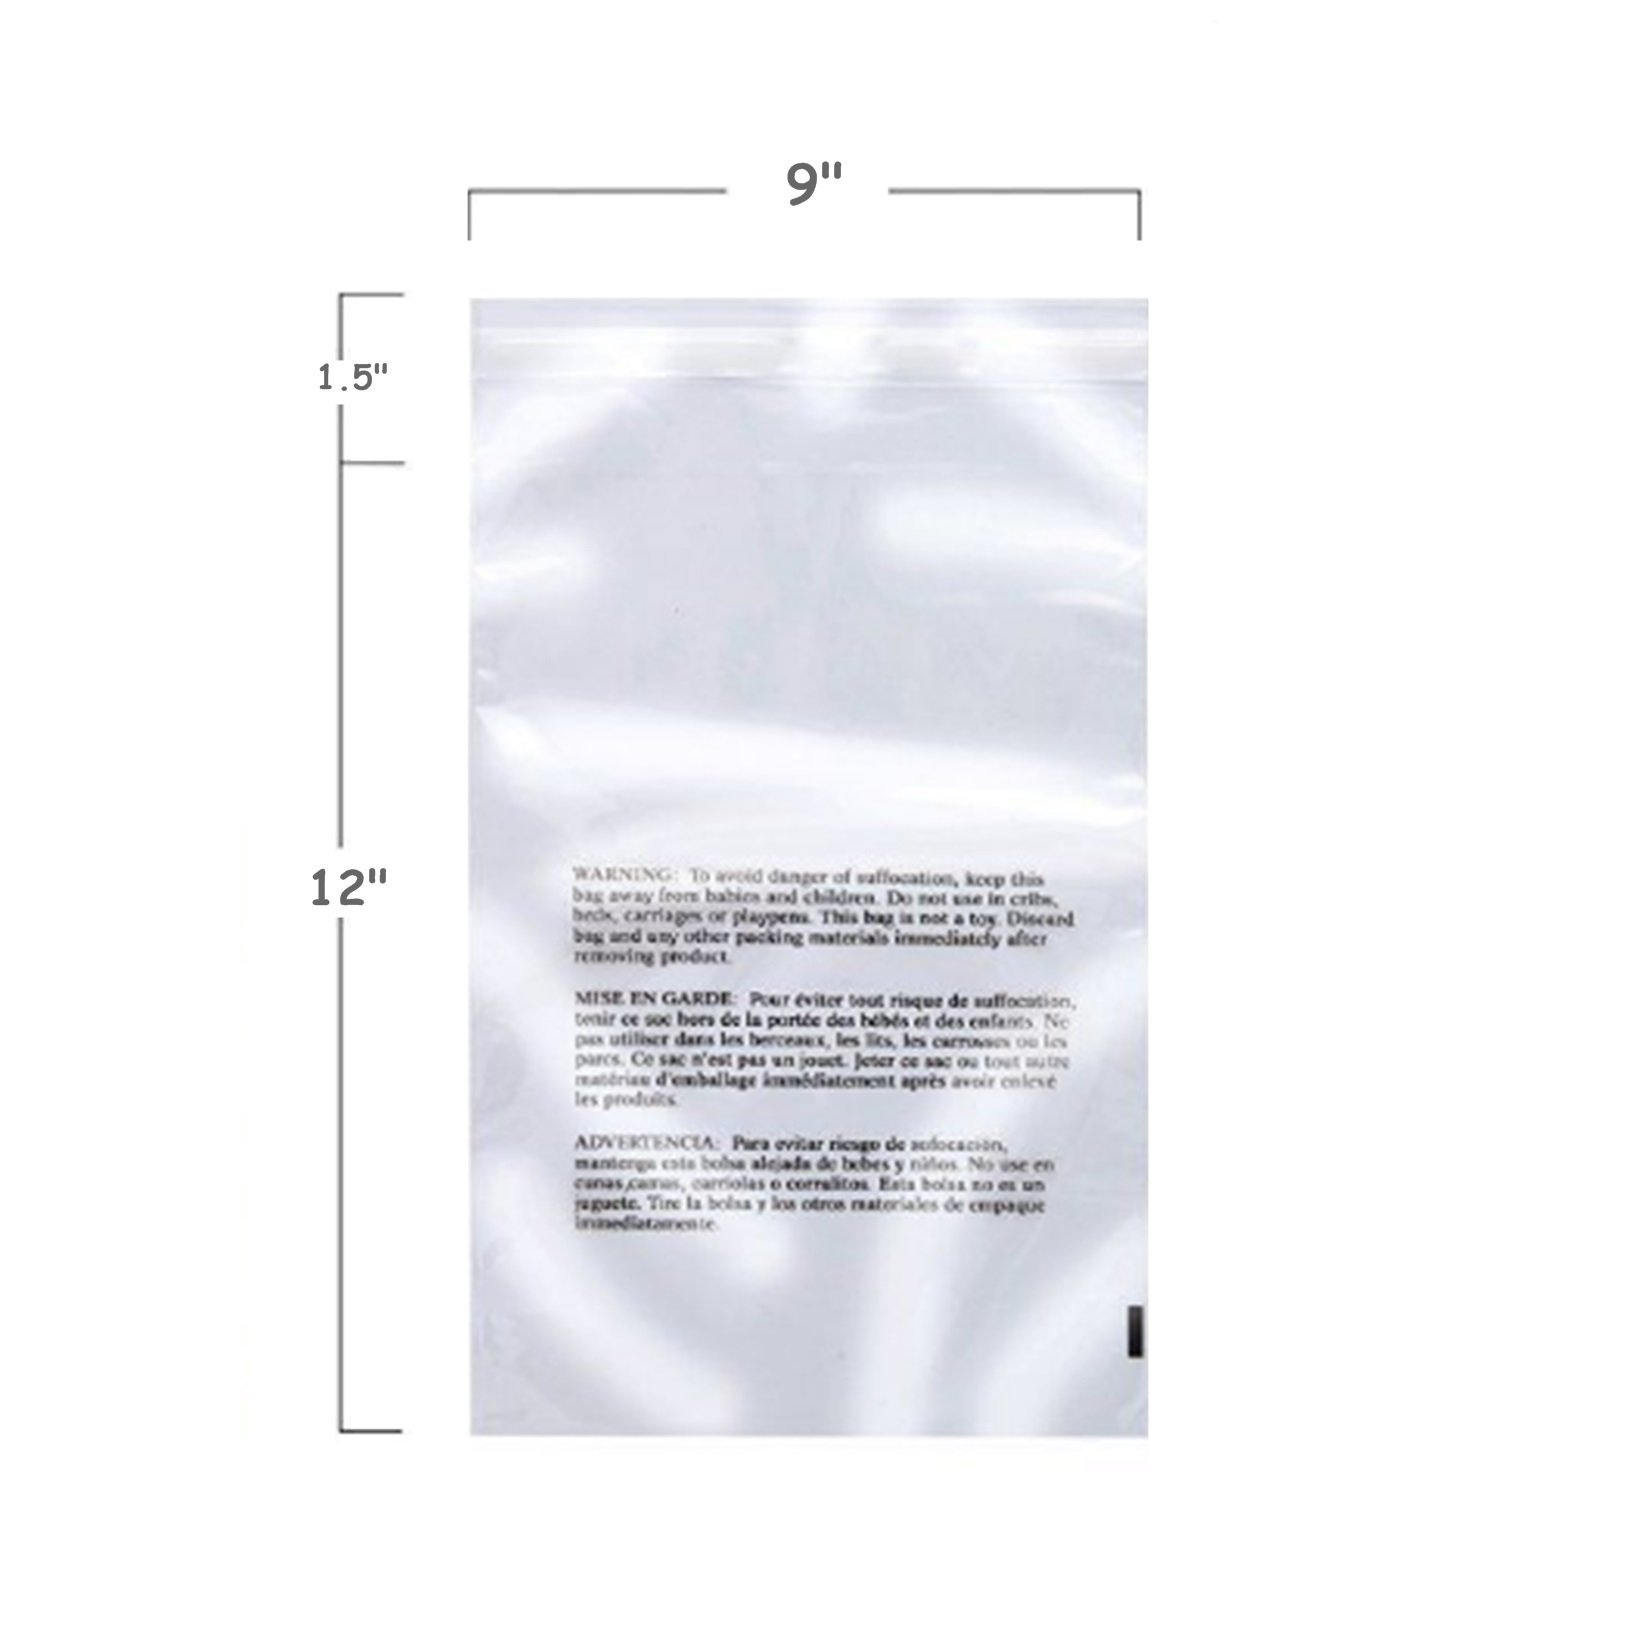 500 9''x12'' Self Seal Suffocation Warning Clear Poly Bags 1.5 mil TKT-11